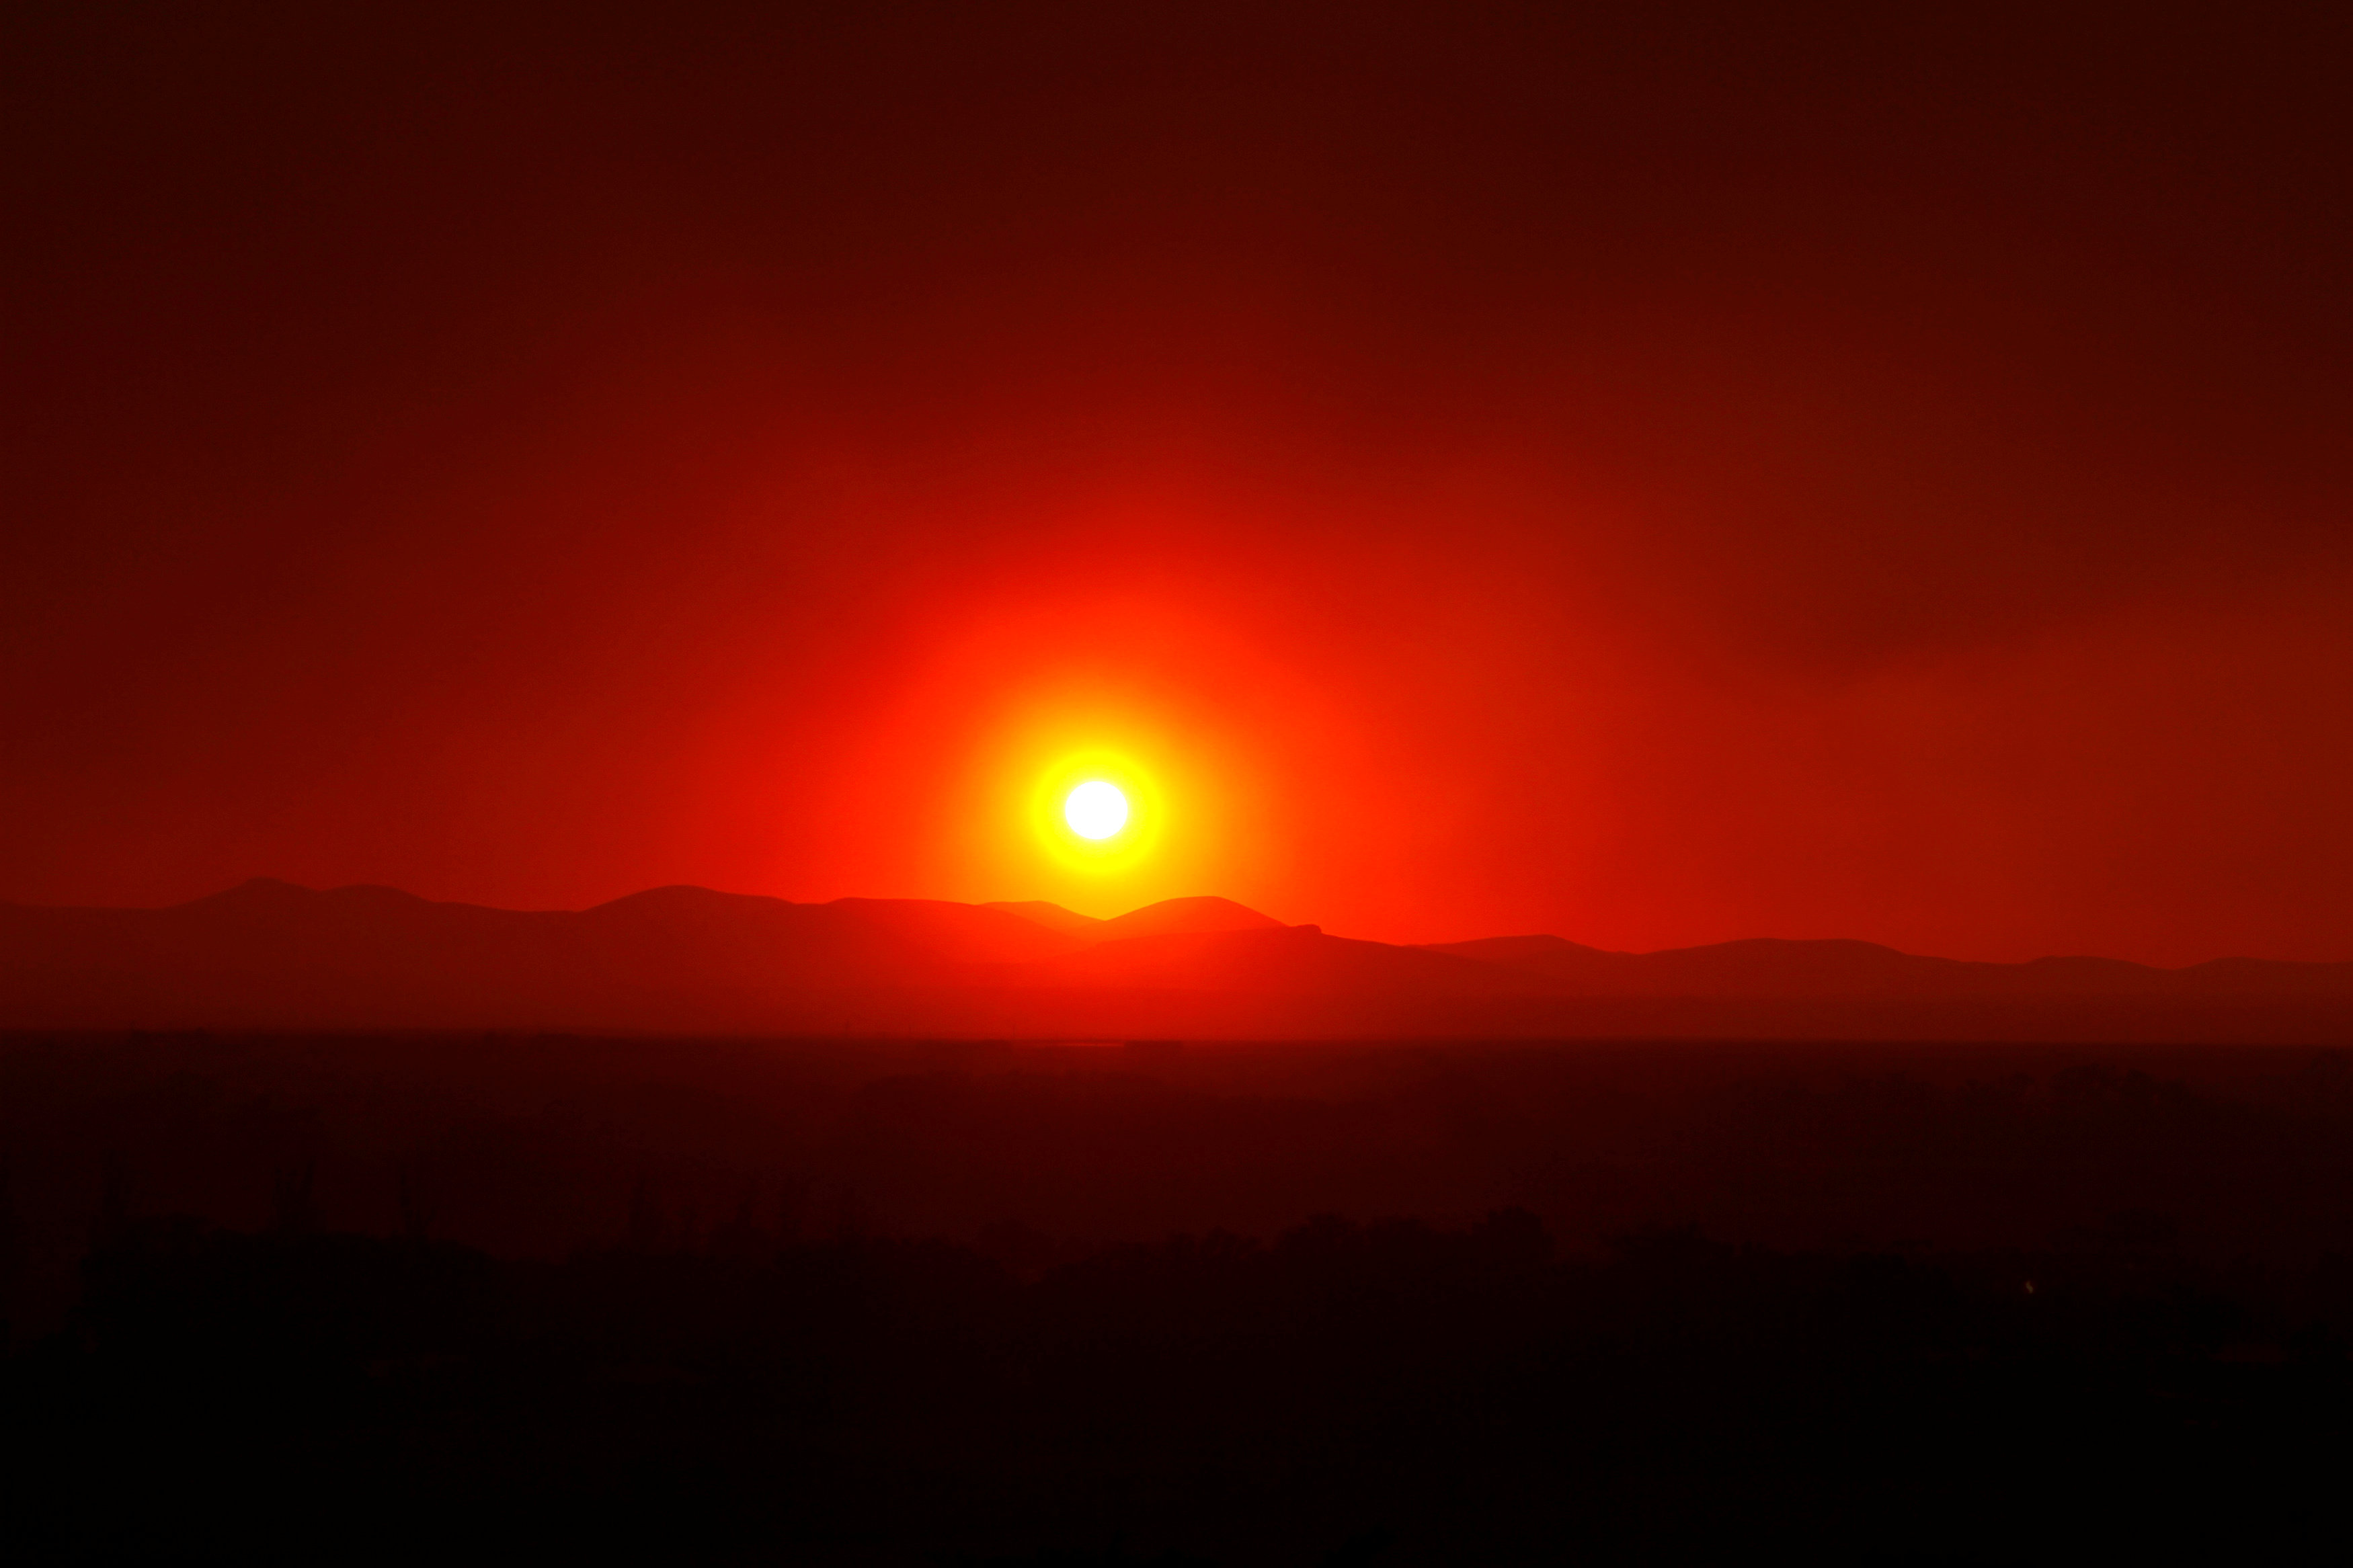 FILE PHOTO: Smoke from the Wallow Wildfire billows over the White Mountains as the sun sets in Springerville, Arizona, U.S., June 8, 2011. REUTERS/Joshua Lott/File Photo